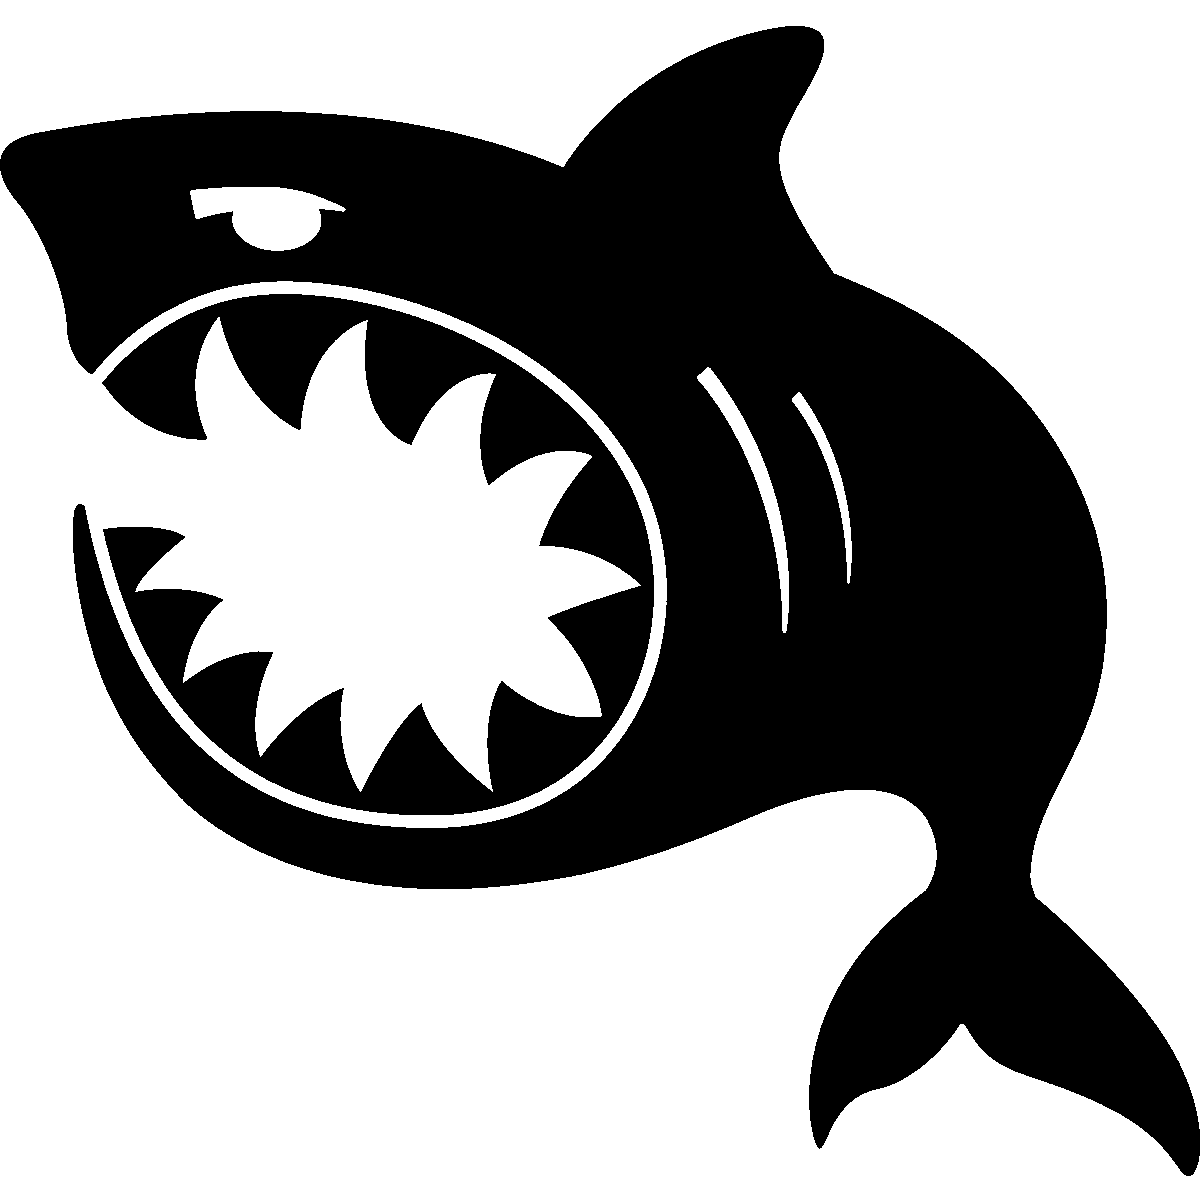 sticker decal car laptop macbook kitchen room shark porthole kid funny fish door